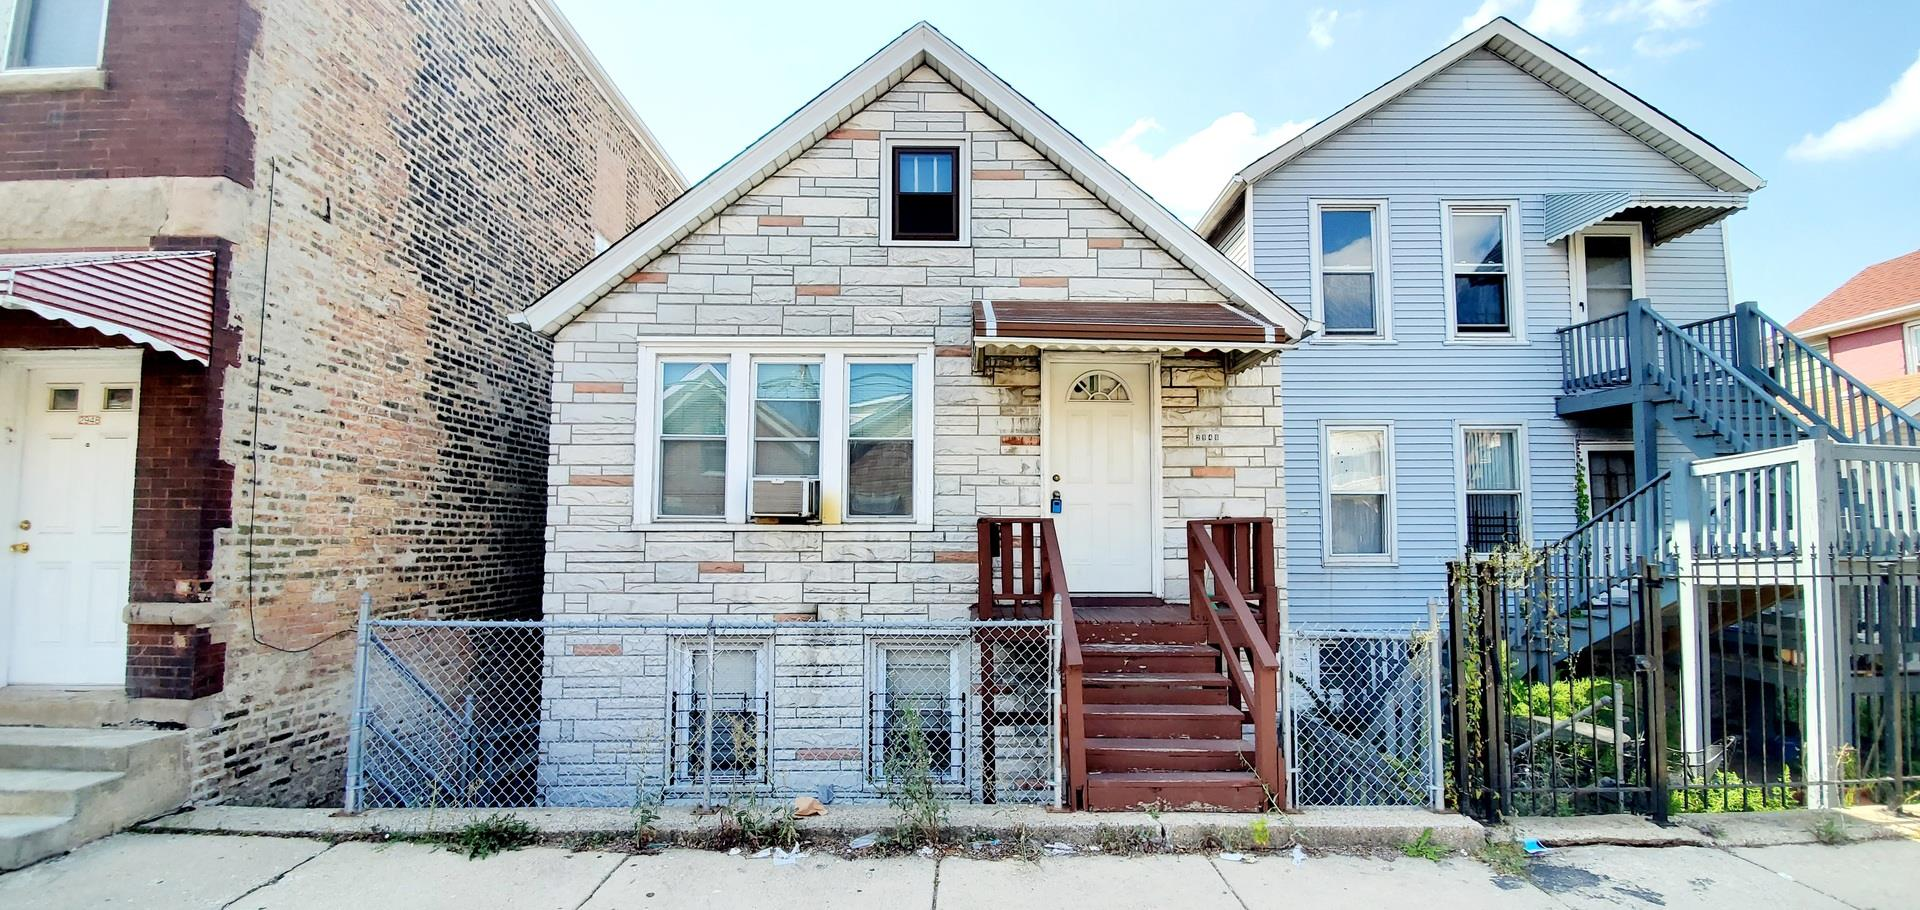 2946 S Keeley Street, Chicago, IL 60608 - #: 10883628